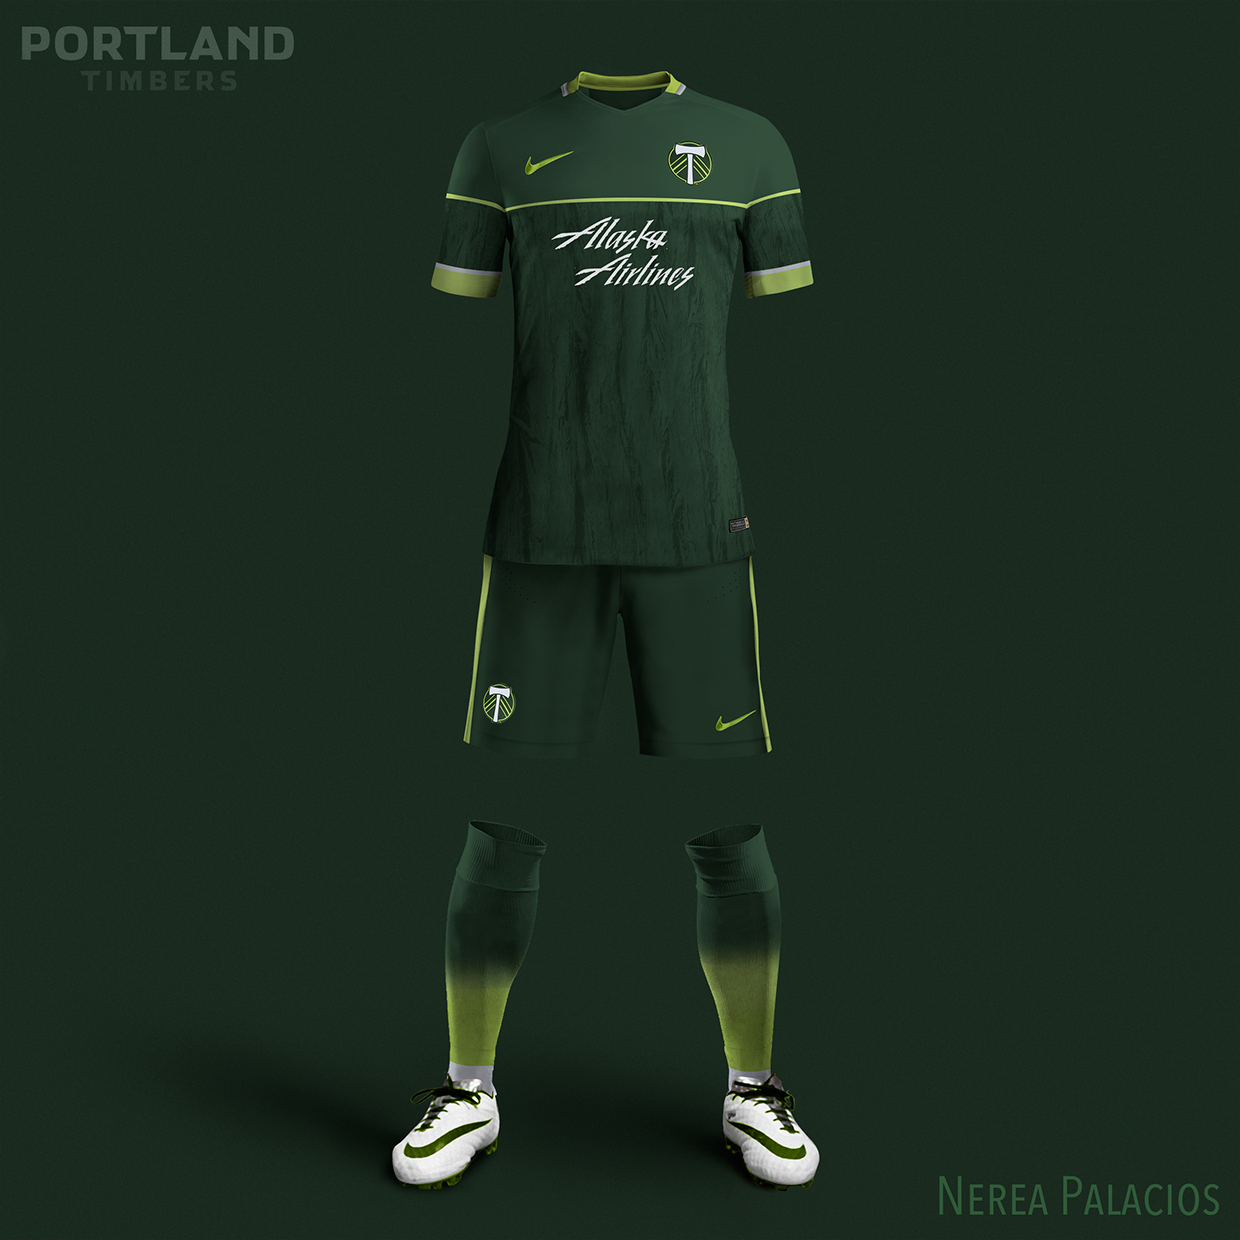 newest 6fd2d c9e5f What if MLS clubs switched jerseys from adidas to Nike ...